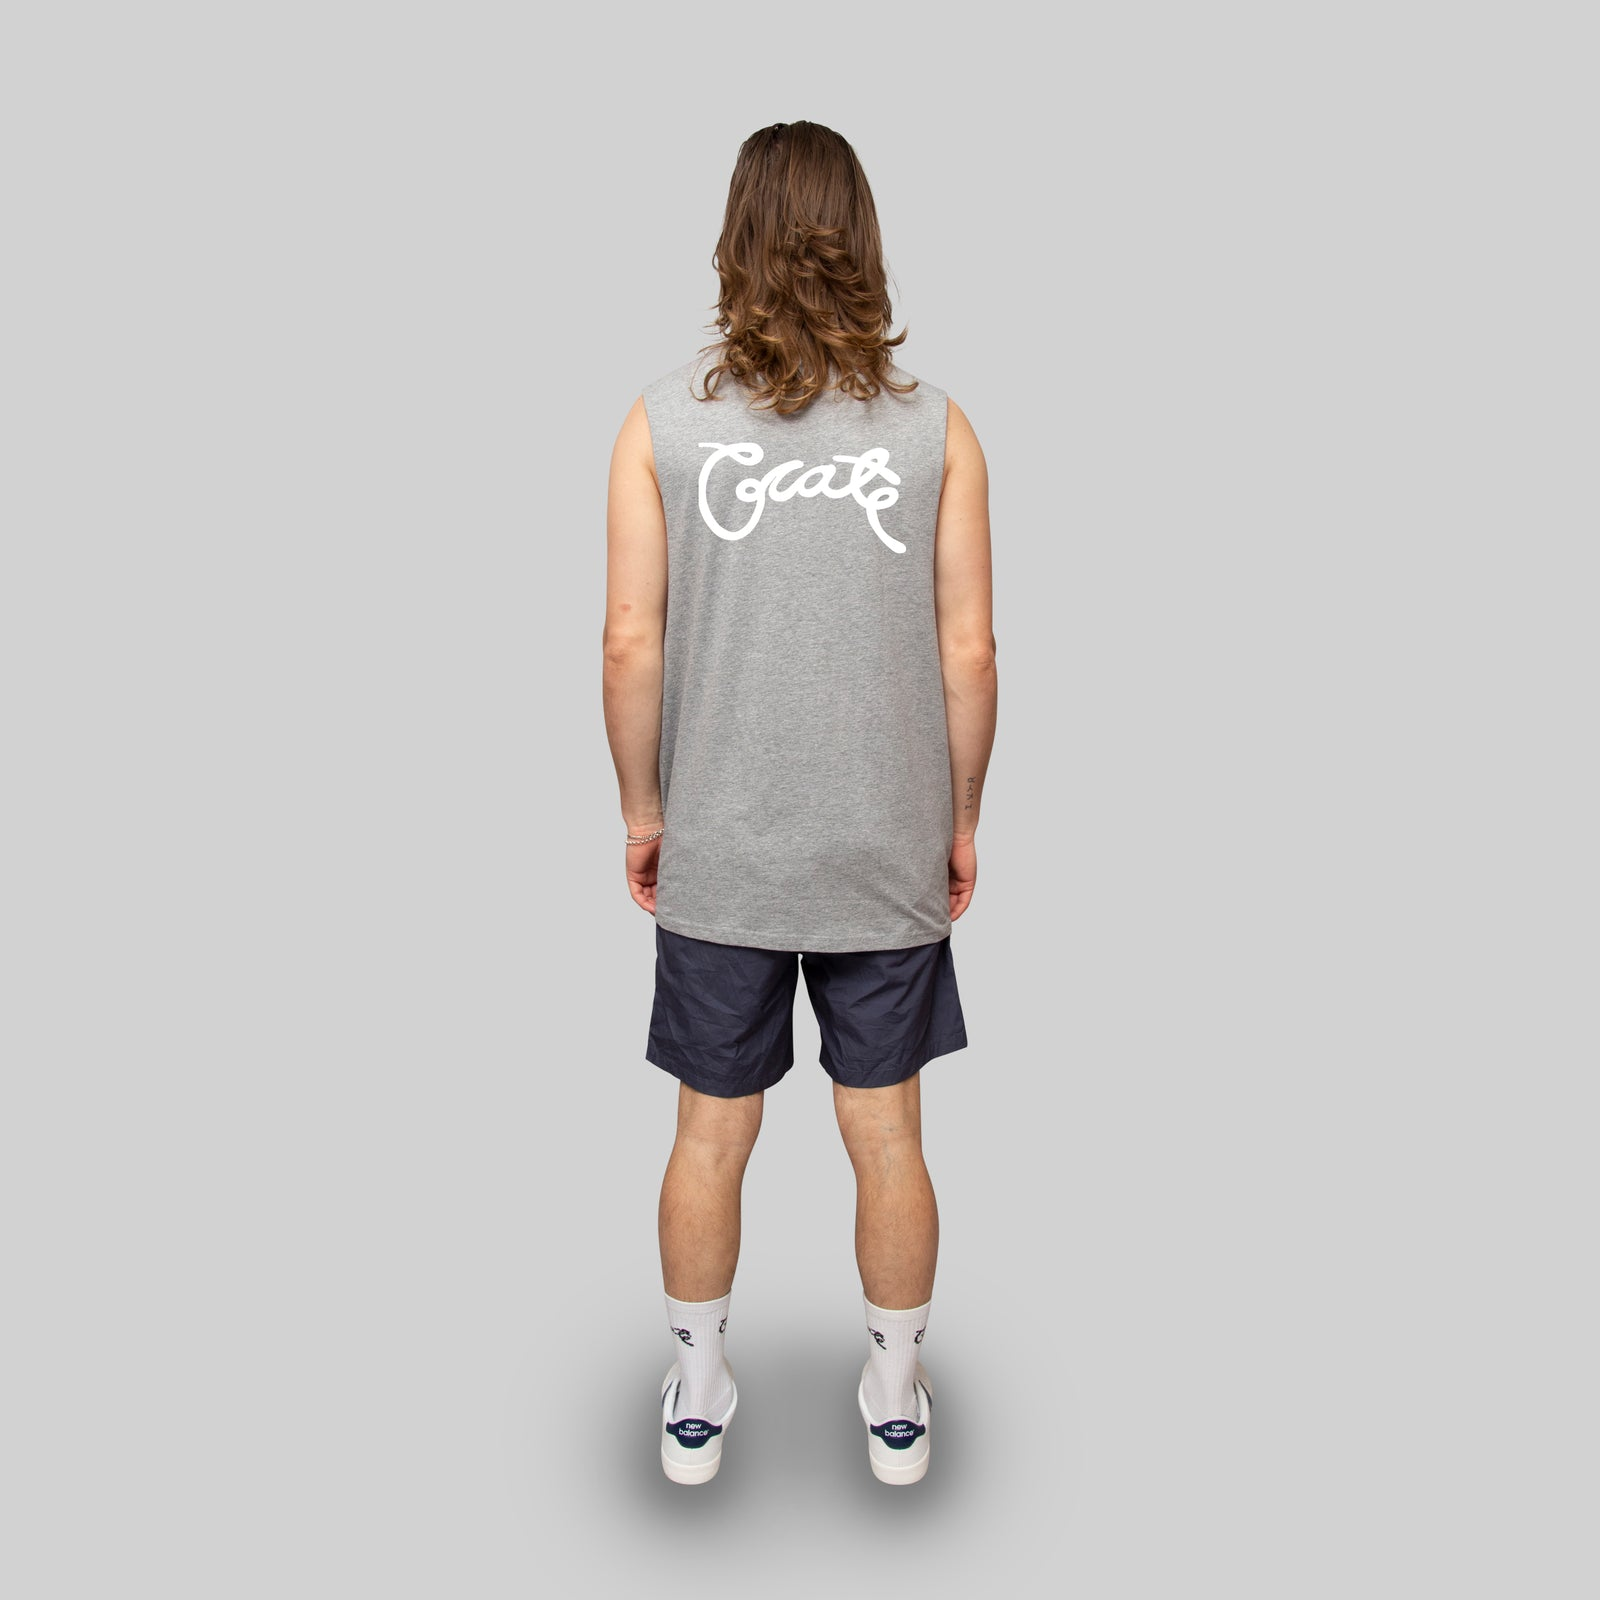 Mens Scripted Muscle Tee